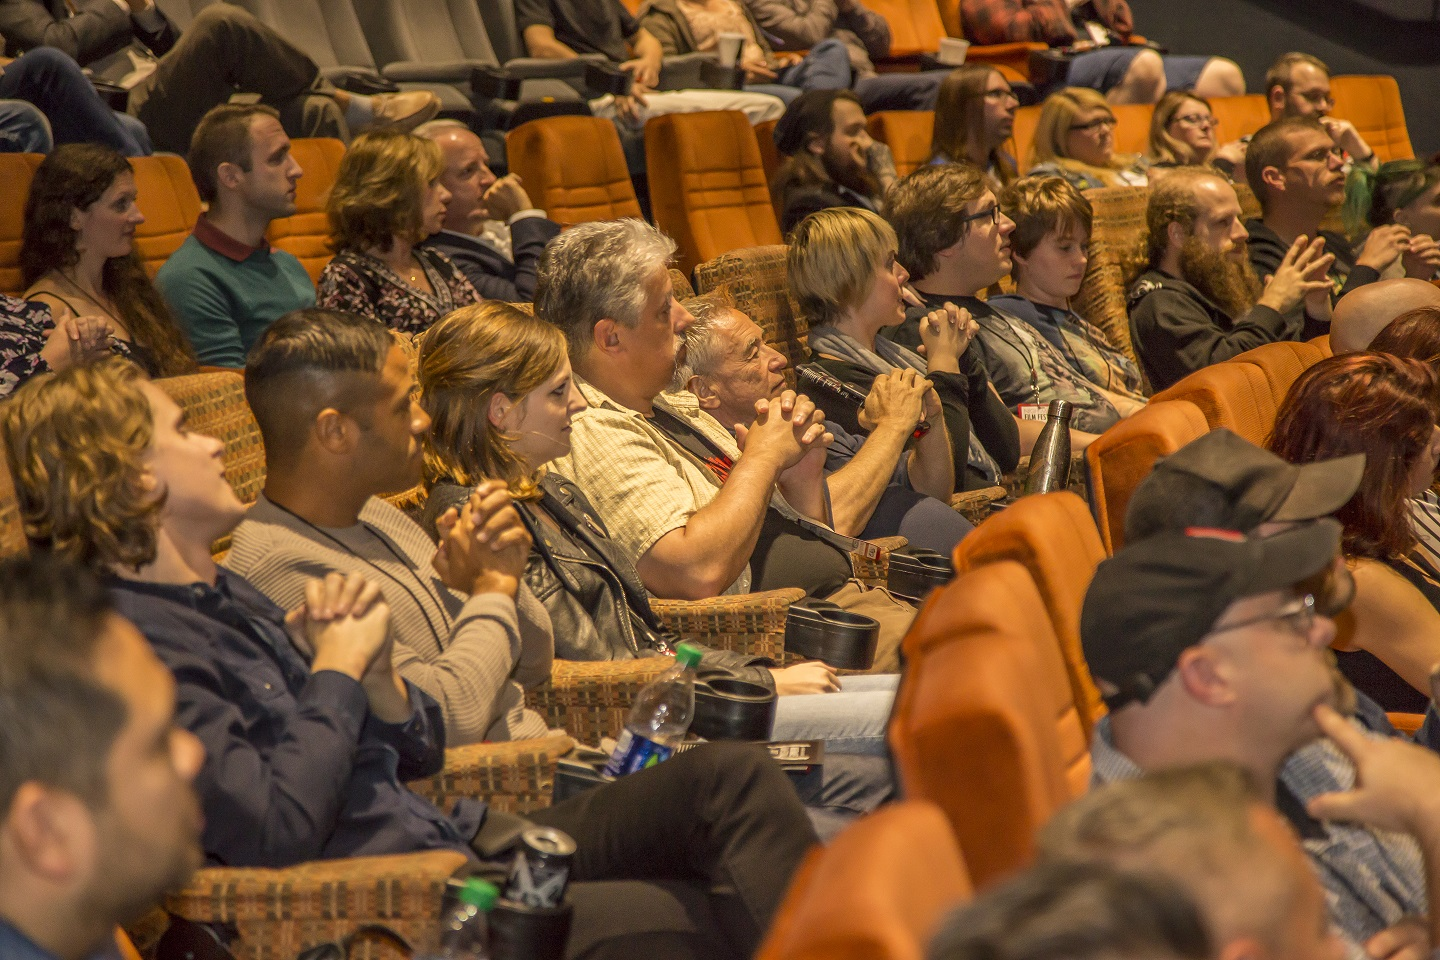 Screenwriters, filmmakers and genre fans travel from around the globe to attend Nightmares Film Festival